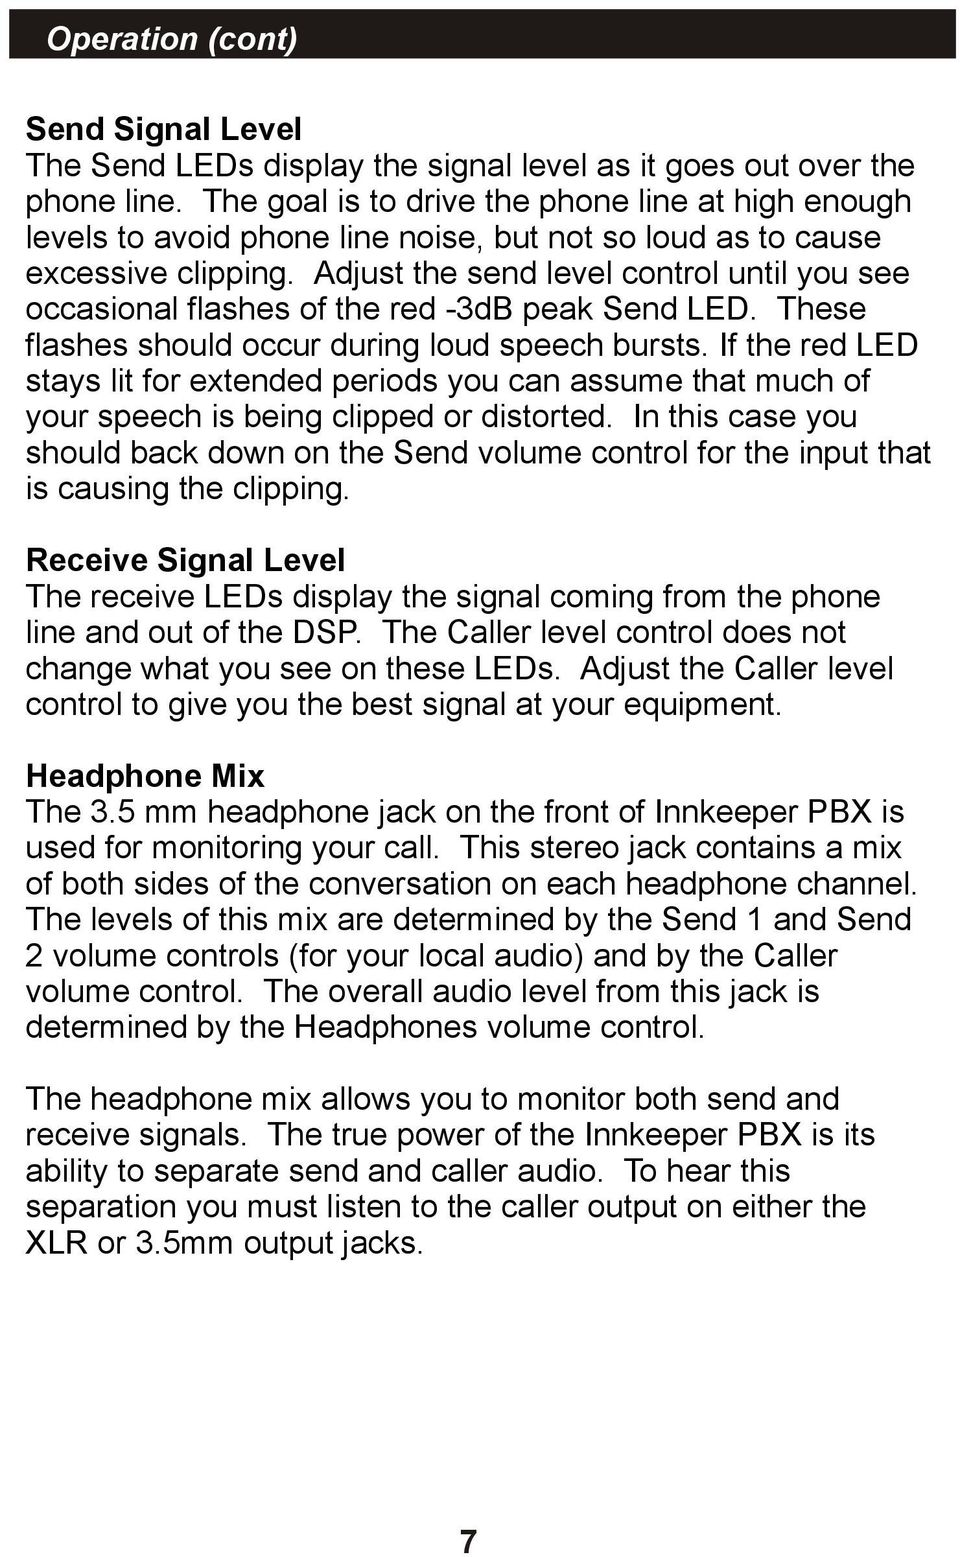 Adjust the send level control until you see occasional flashes of the red -3dB peak Send LED. These flashes should occur during loud speech bursts.